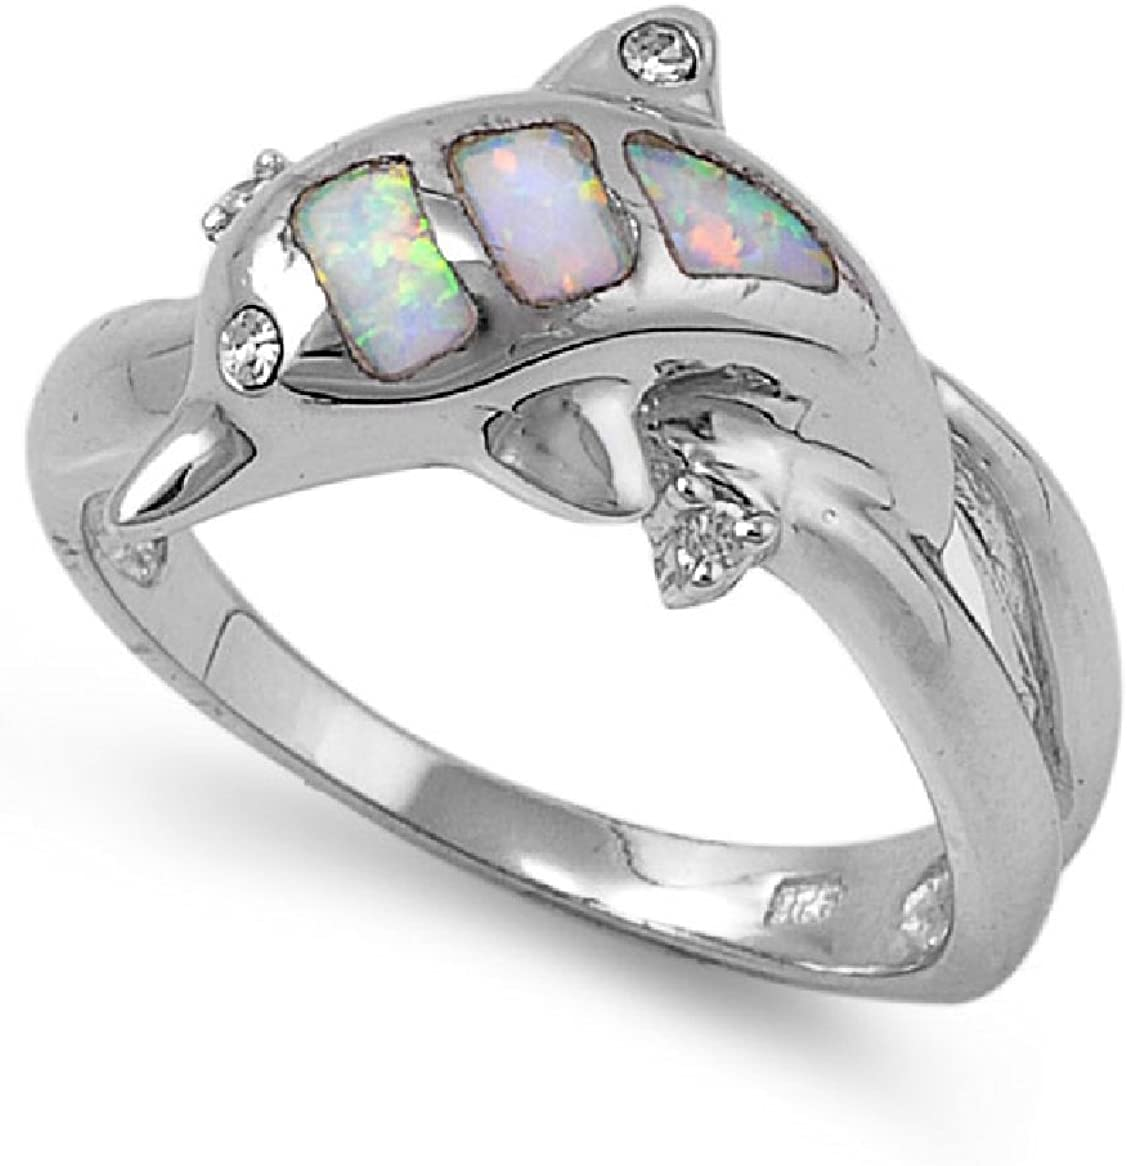 CloseoutWarehouse Dolphin White Simulated Opal Ring 925 Sterling Silver Size 5